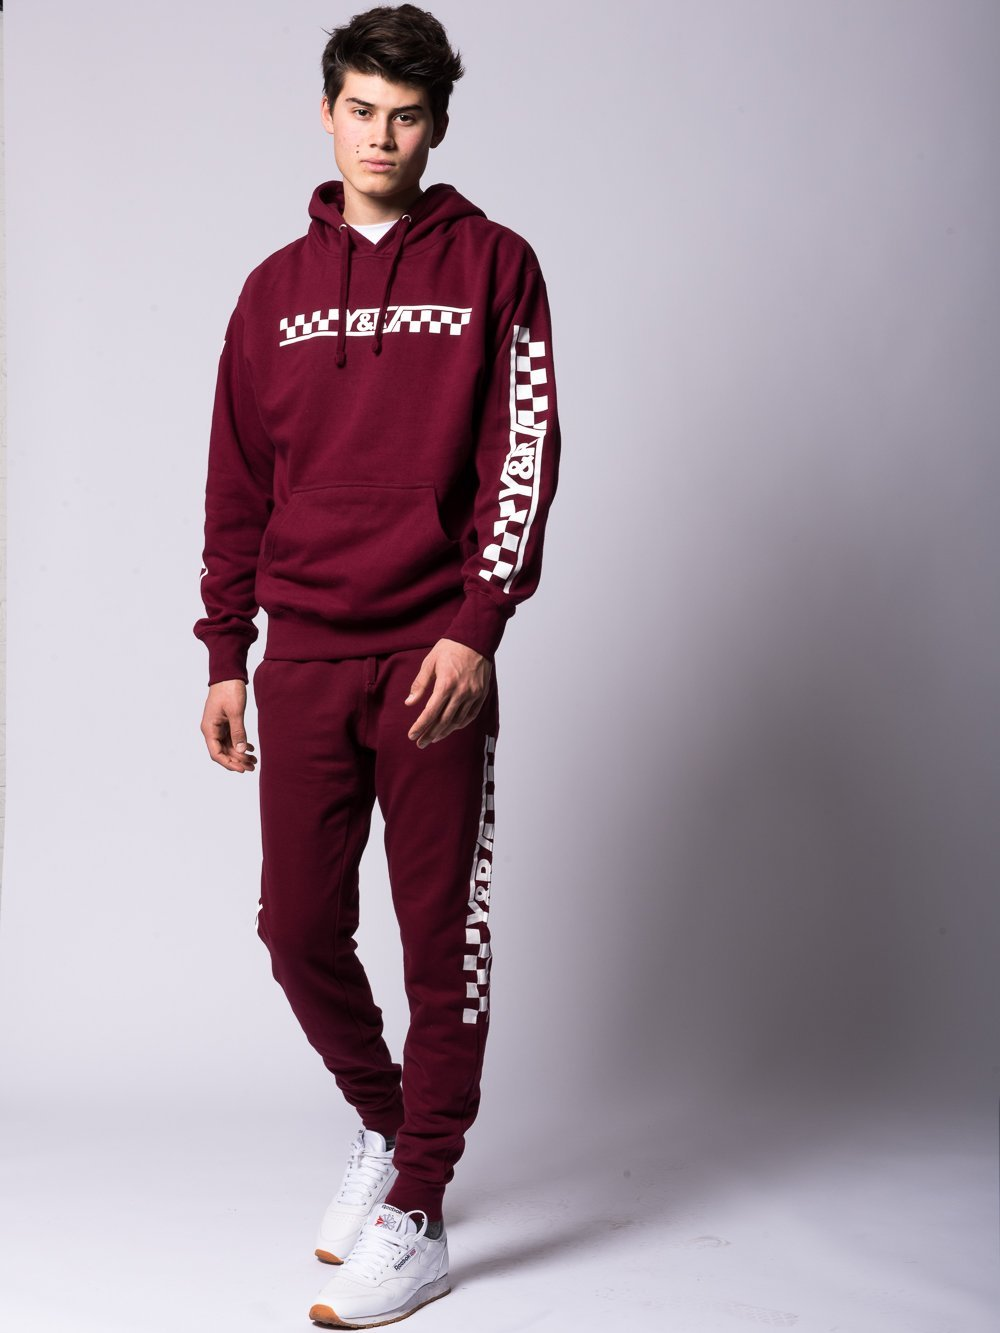 Young and Reckless Mens - Bottoms - Sweatpants Excursion Sweatpants - Burgundy